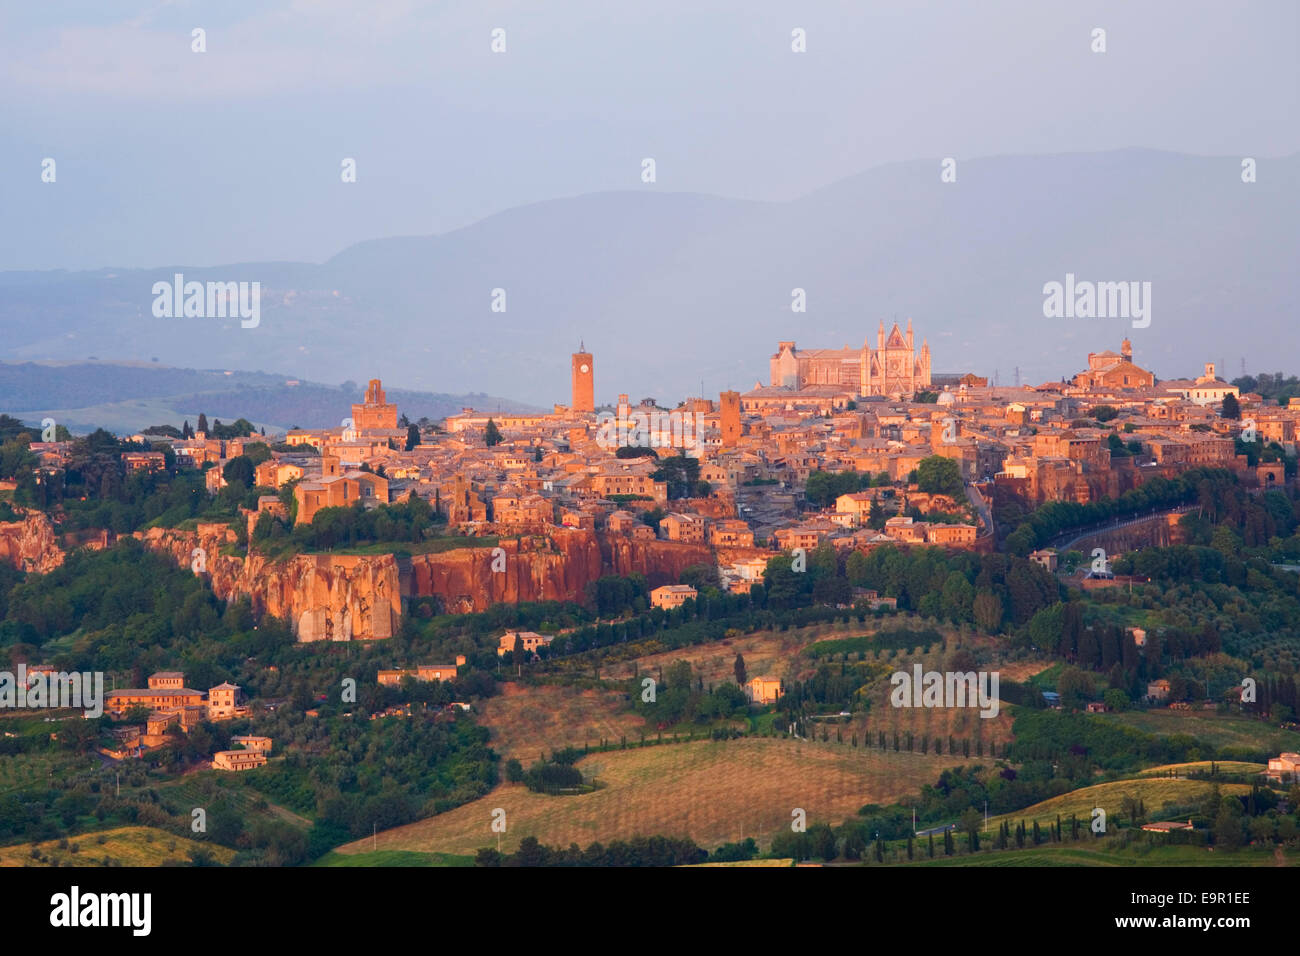 Orvieto, Umbria, Italy. View to the city skyline across agricultural landscape, sunset. Stock Photo